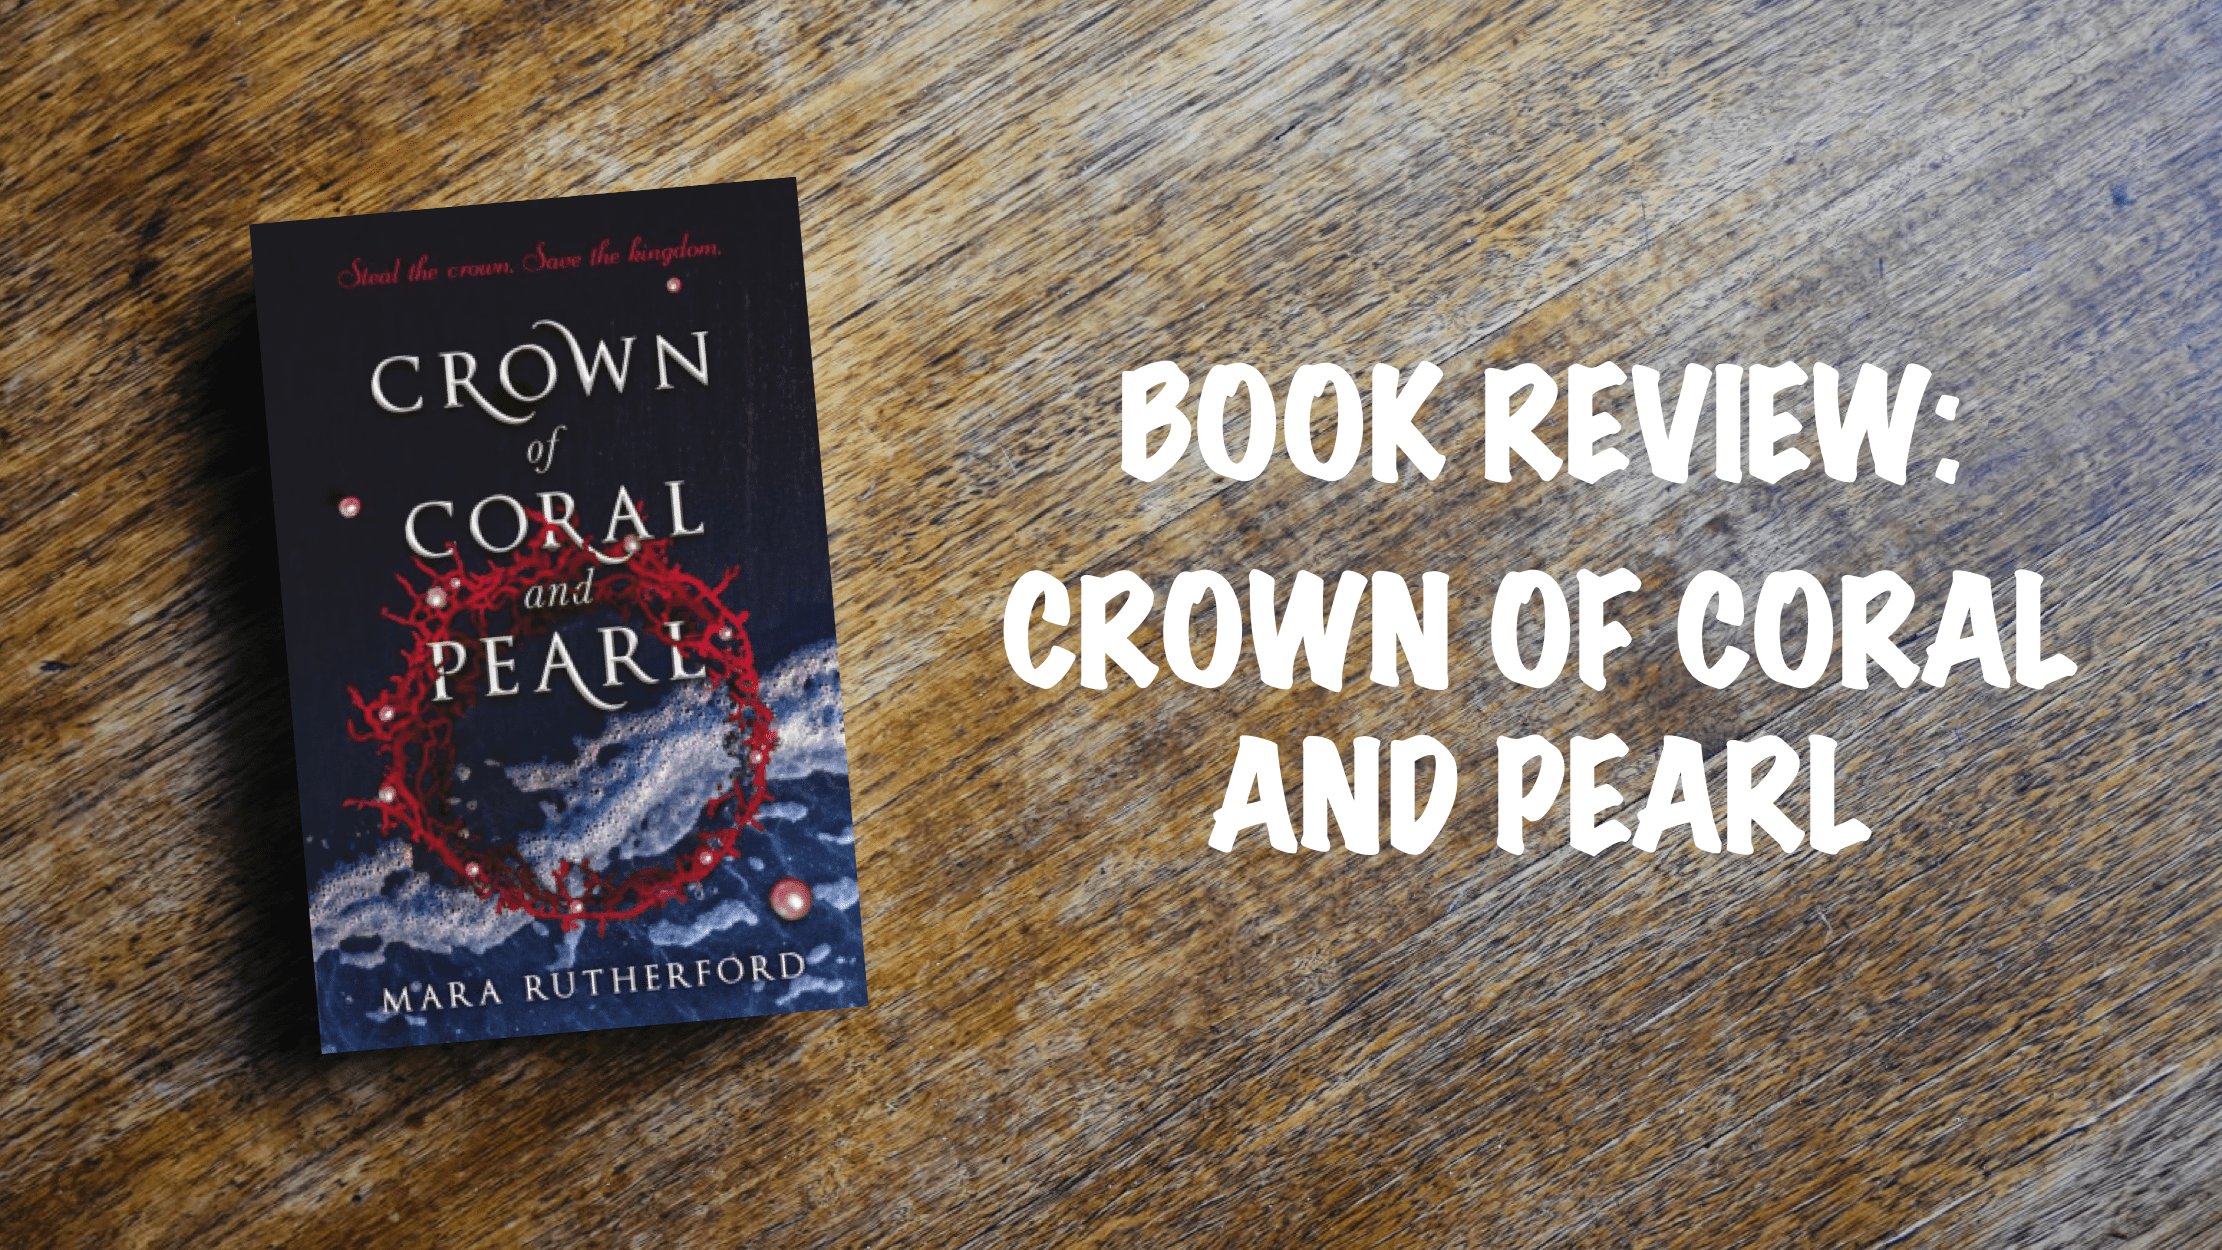 Book review: Crown of Coral and Pearl